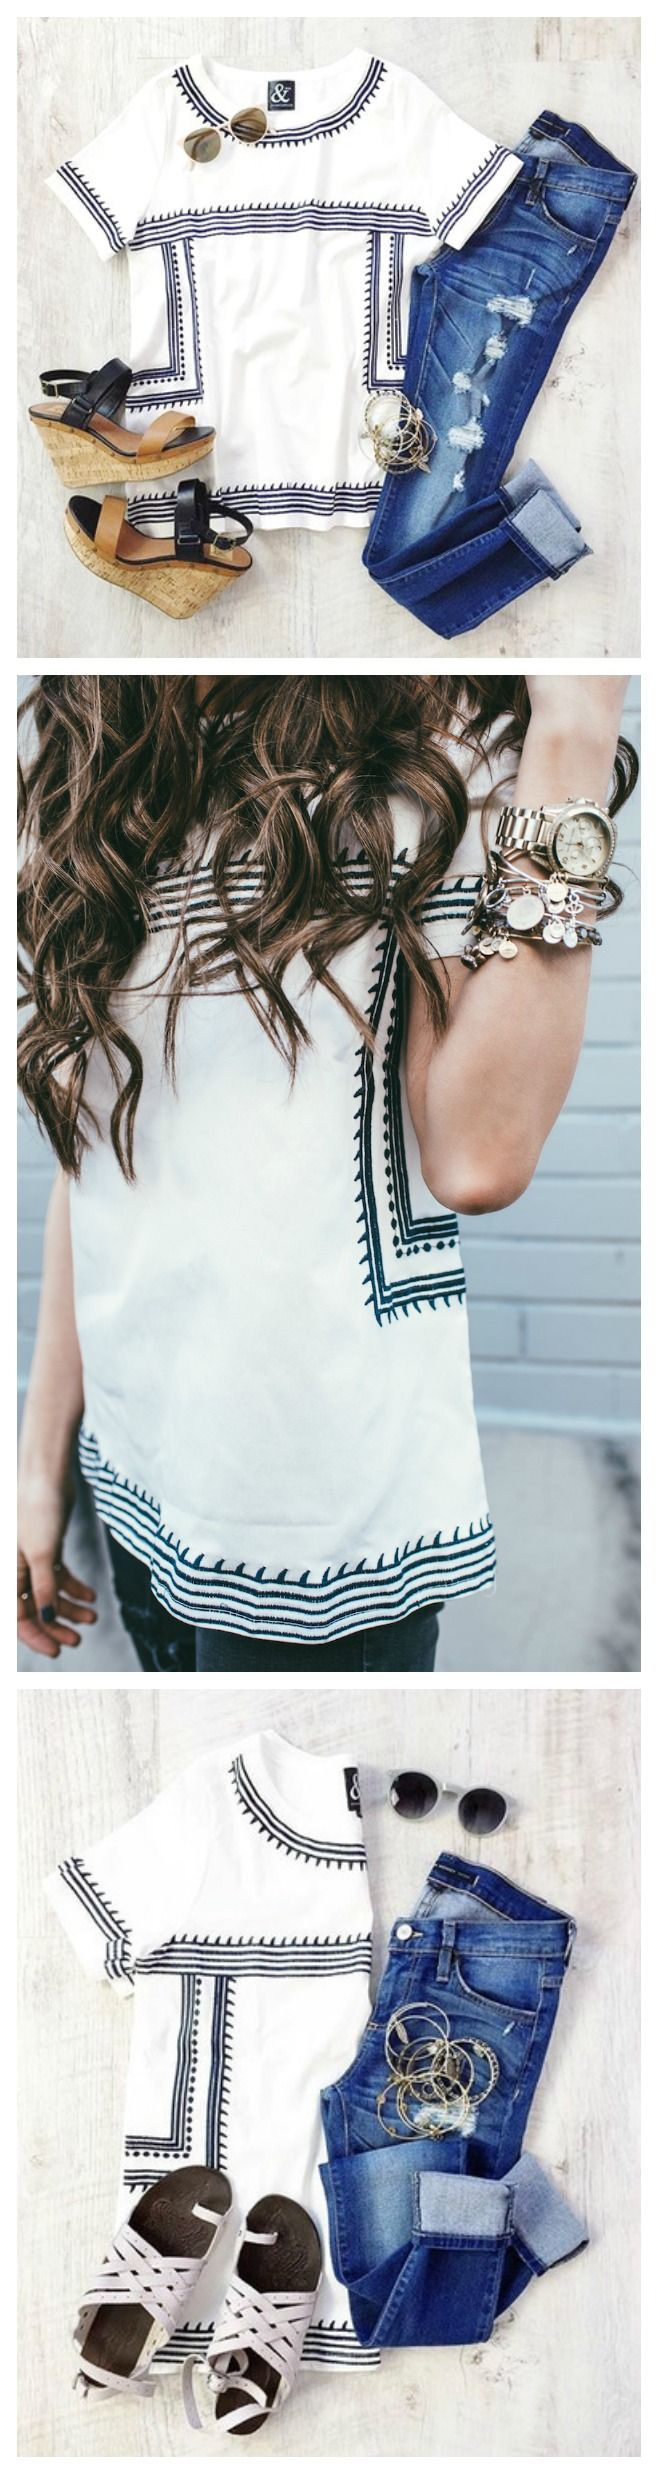 White Embroidered Top - Nantucket Top via Mindy Mae's Market